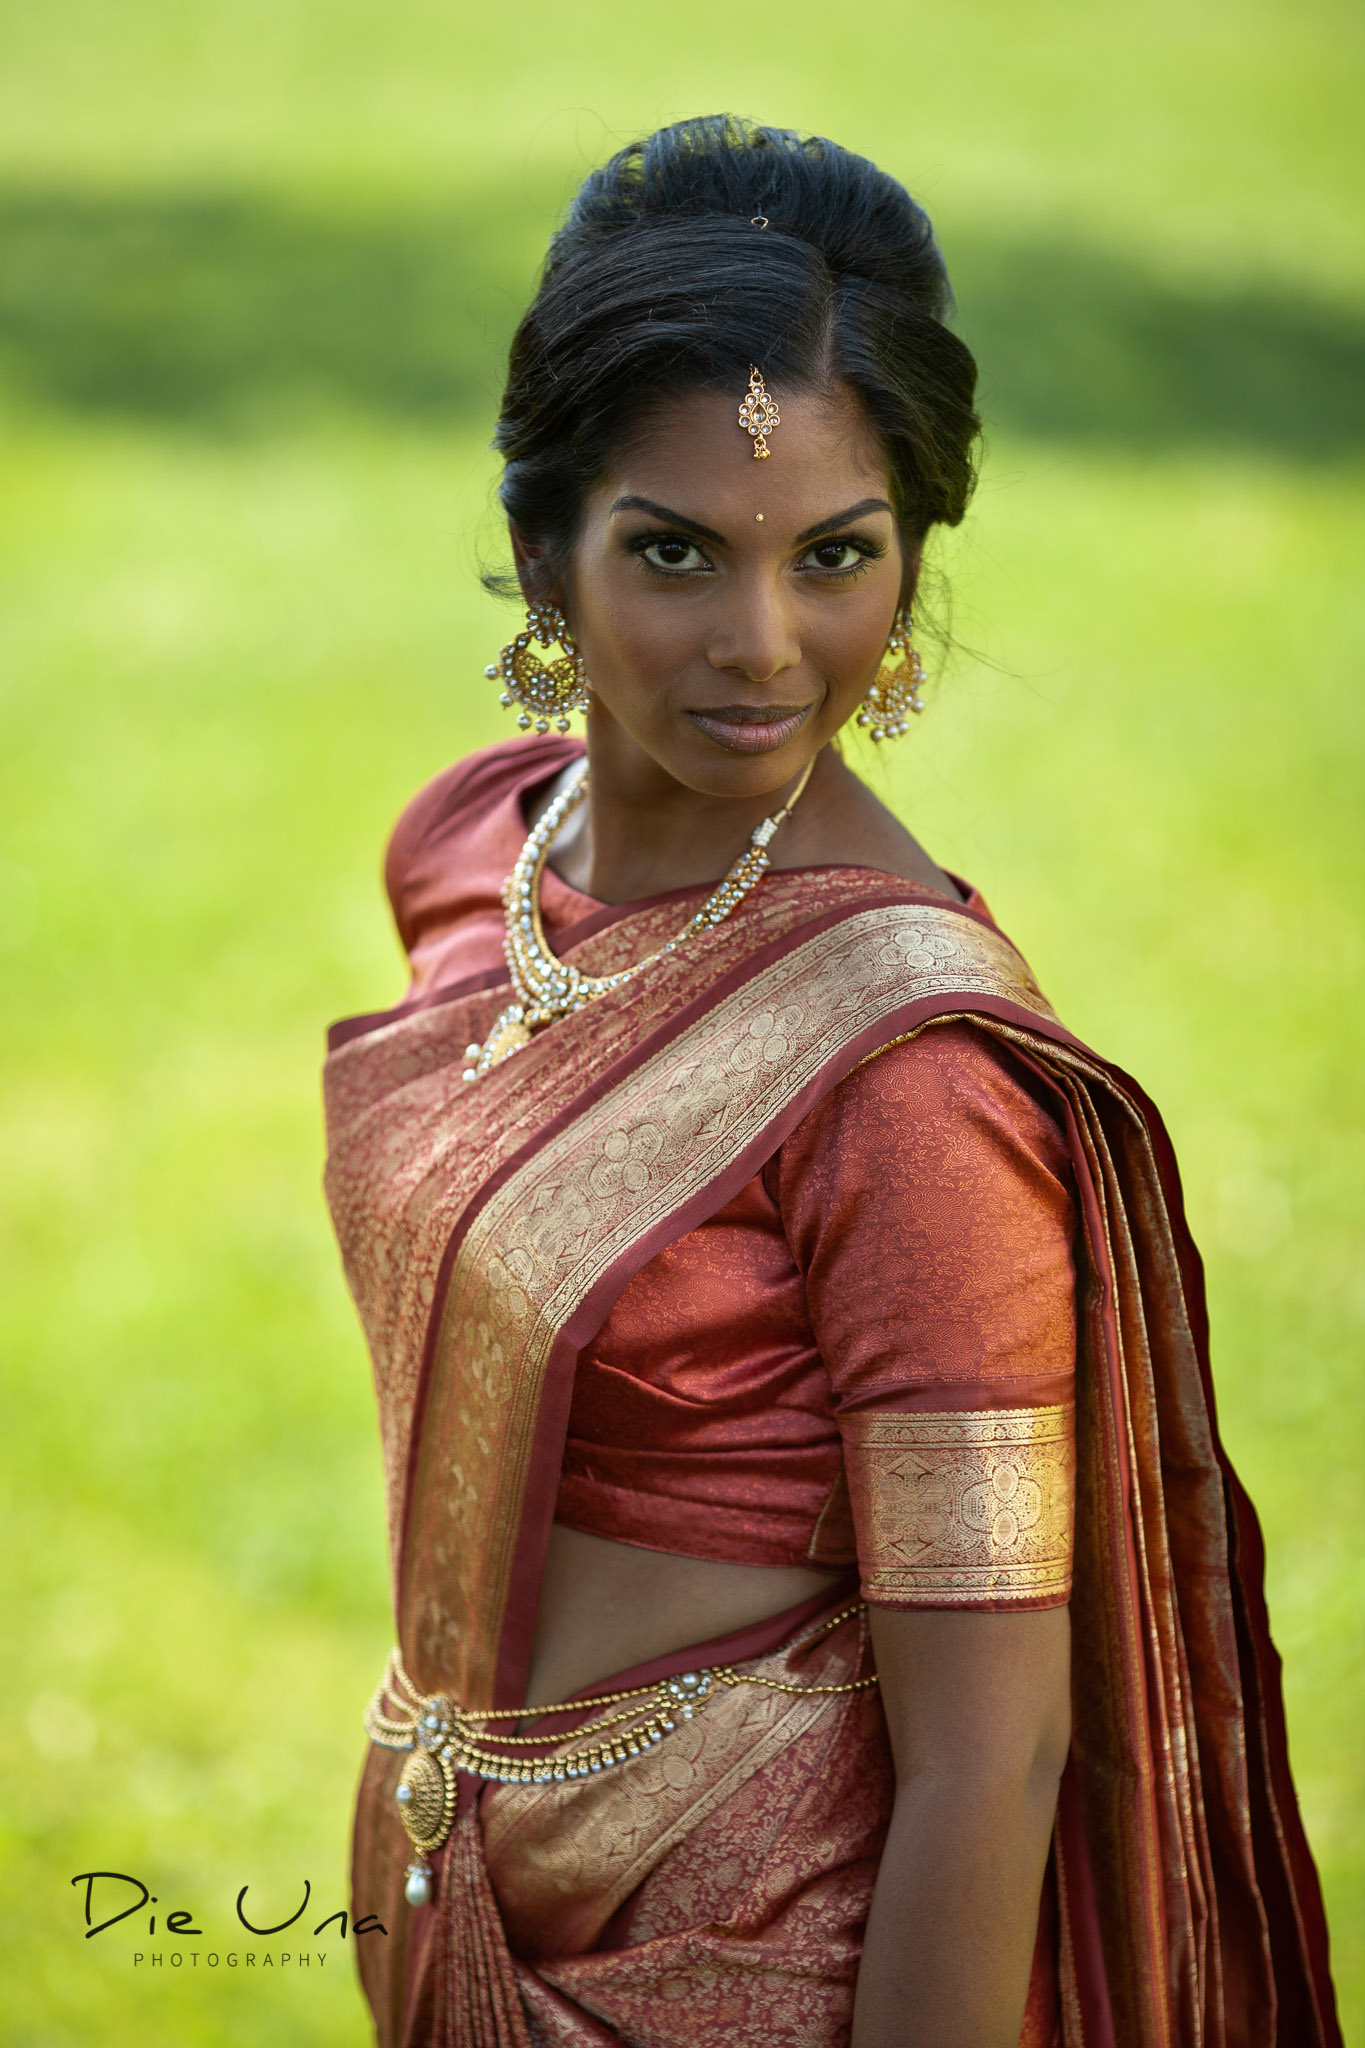 bride in saree looking at camera portrait.jpg